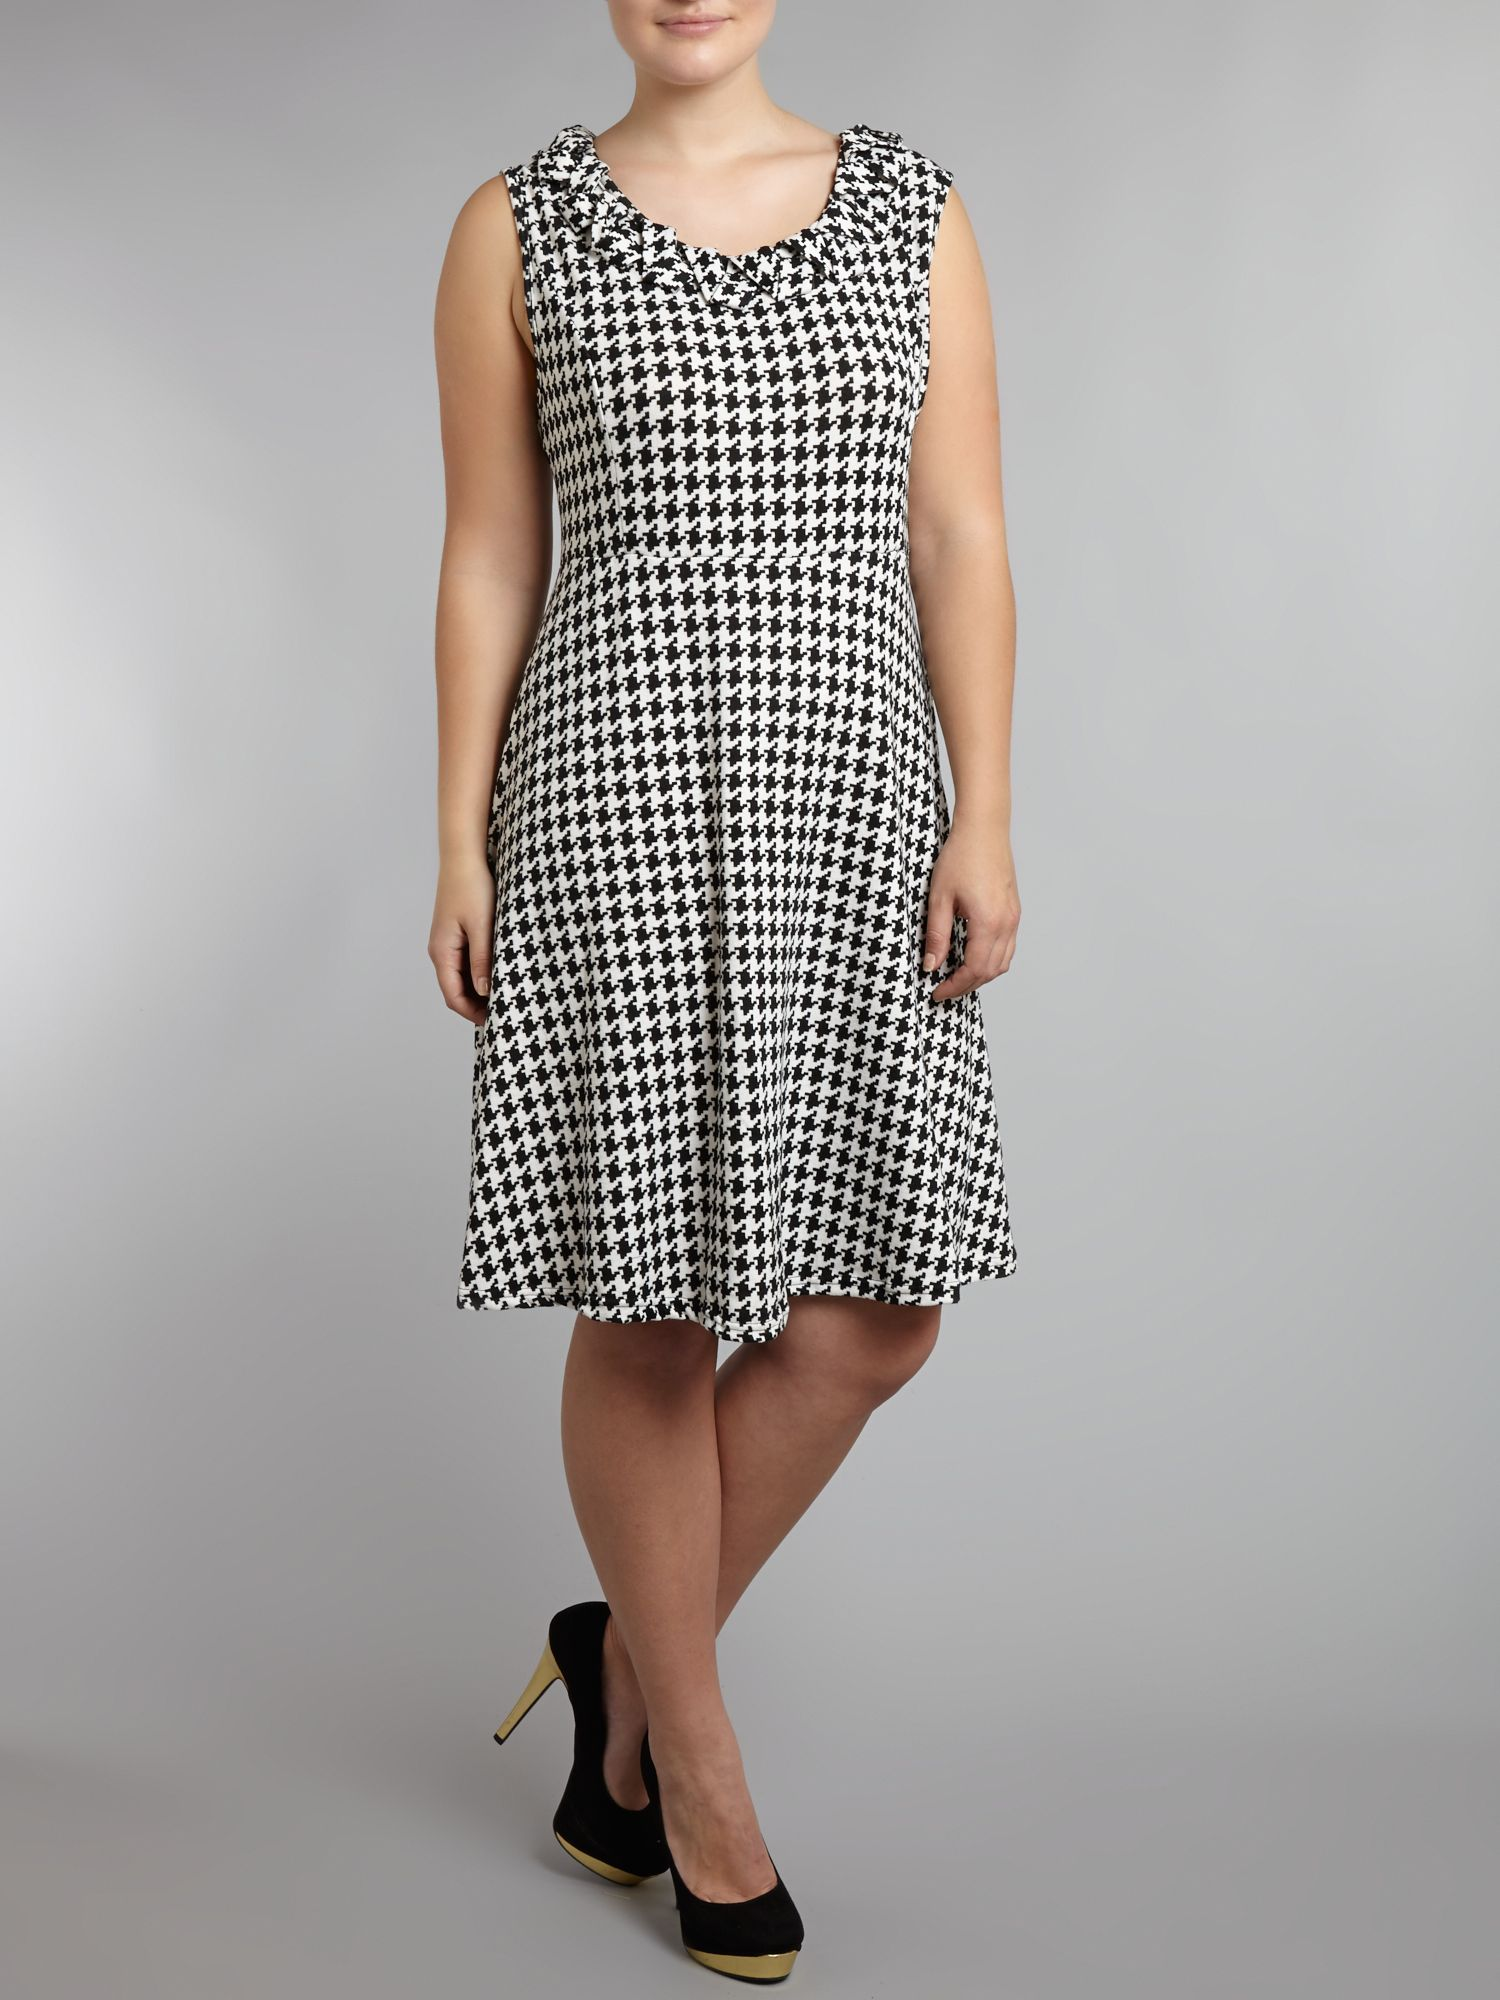 Zigzag collar houndstooth midi dress